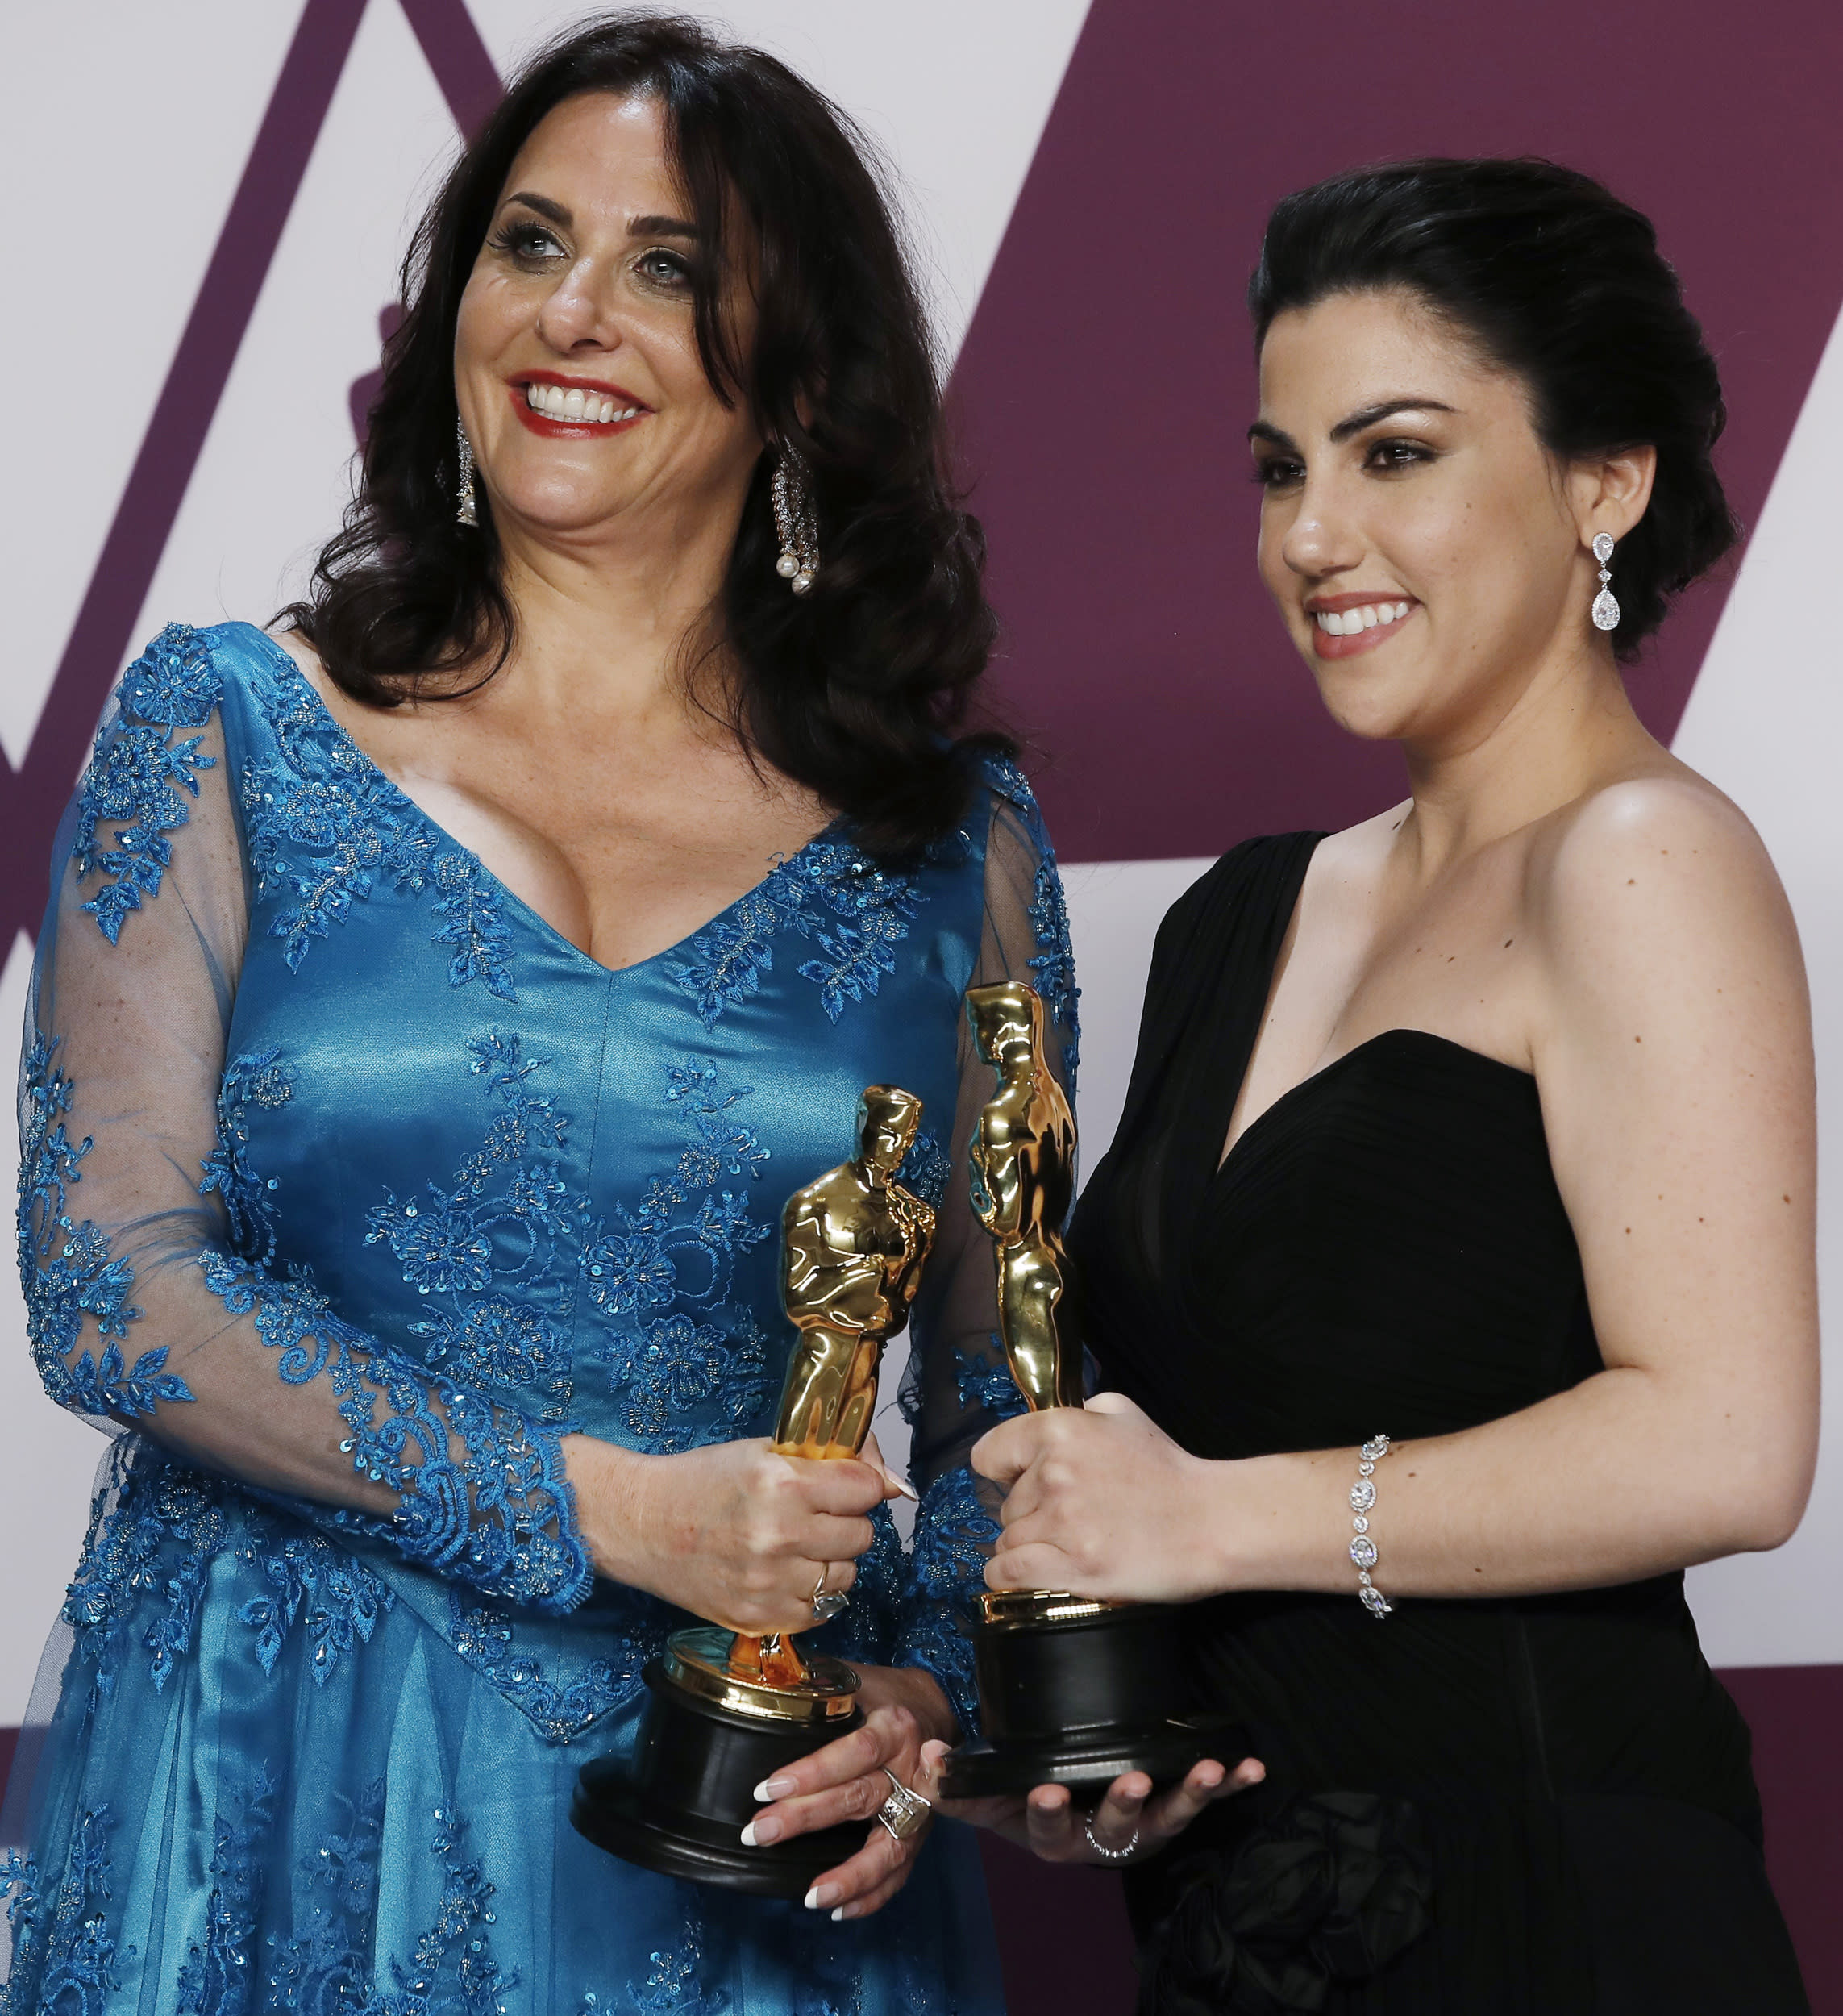 """91st Academy Awards - Oscars Photo Room - Hollywood, Los Angeles, California, U.S., February 24, 2019.  Rayka Zehtabchi and Melissa Berton pose backstage with their award for  Best Documentary Short Subject award for the film """"Period. End Of Sentence."""" REUTERS/Mike Segar"""